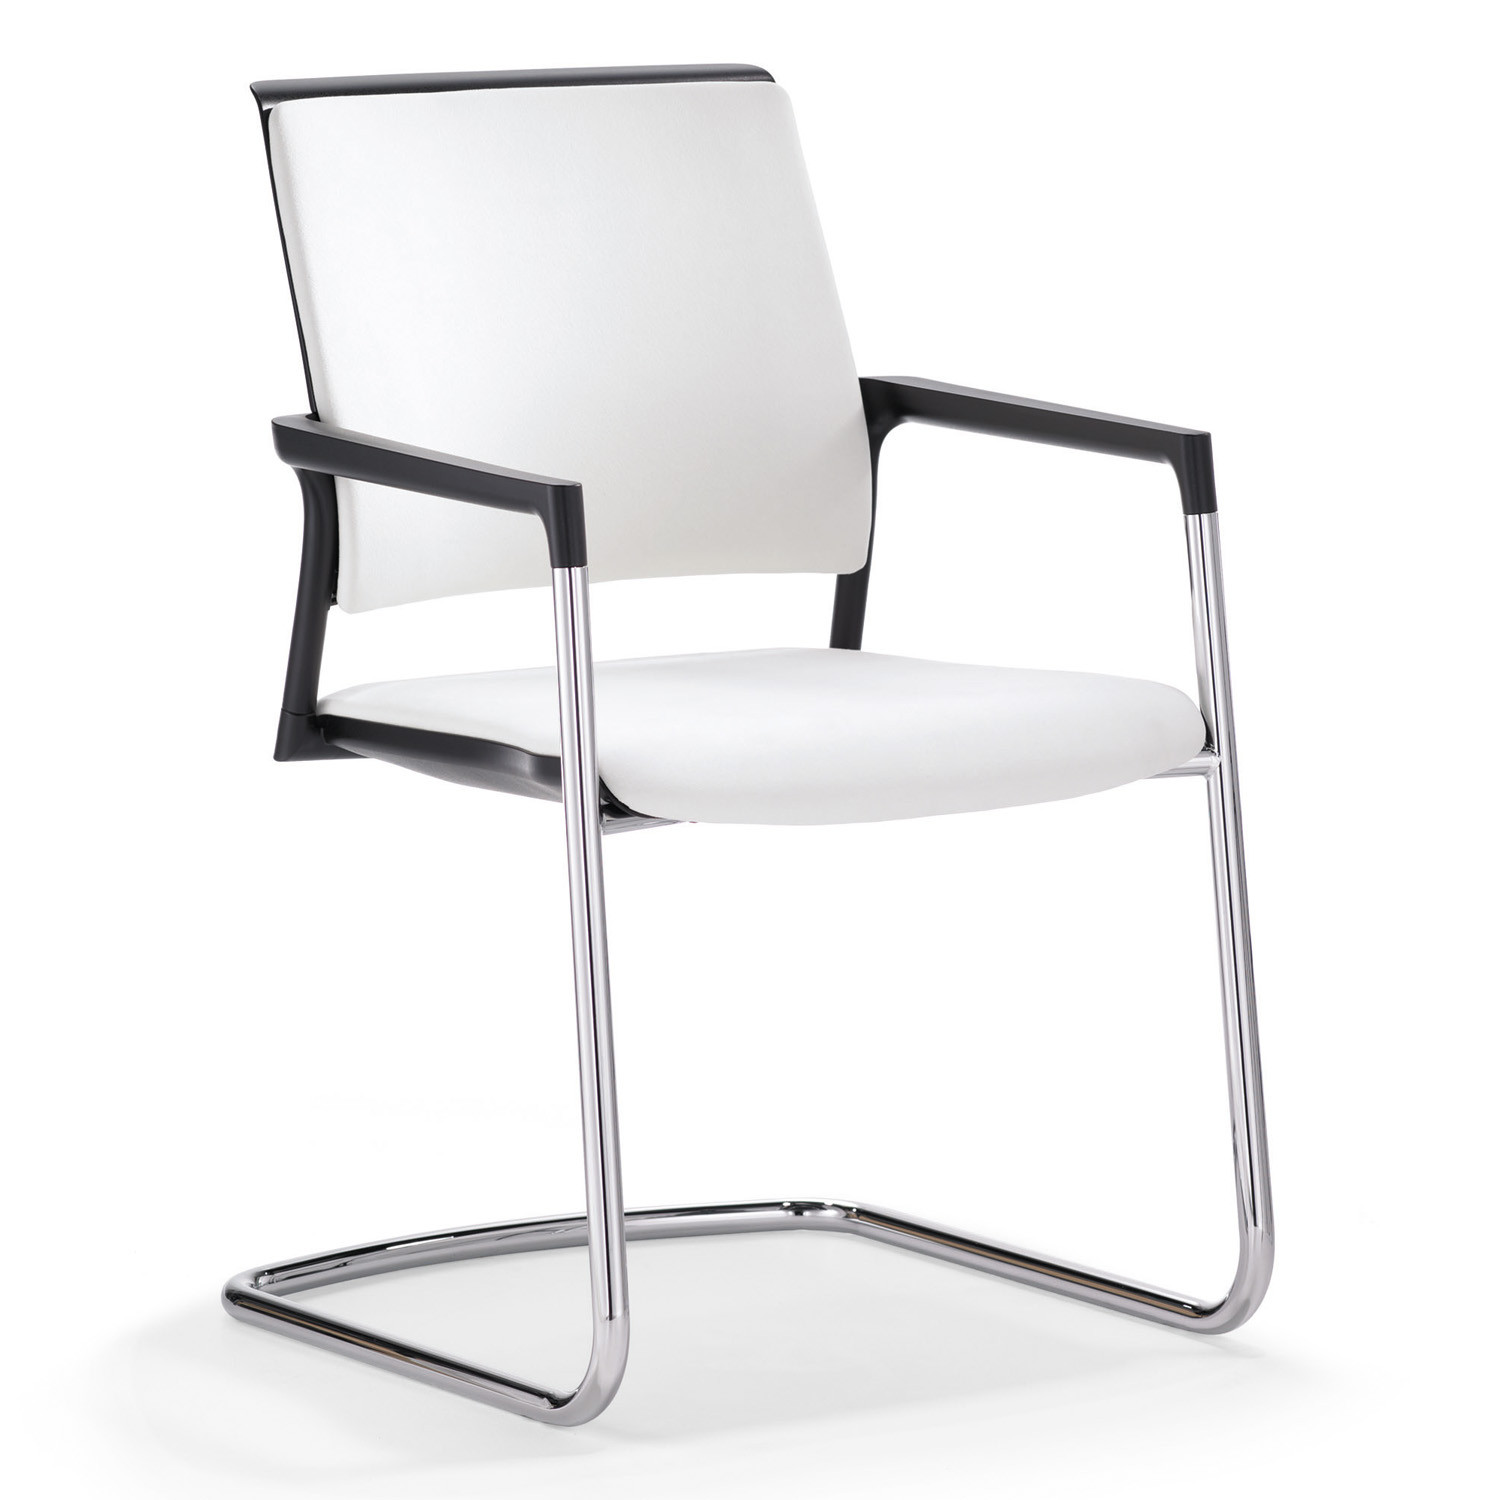 Mera Visitors Chairs by Klober